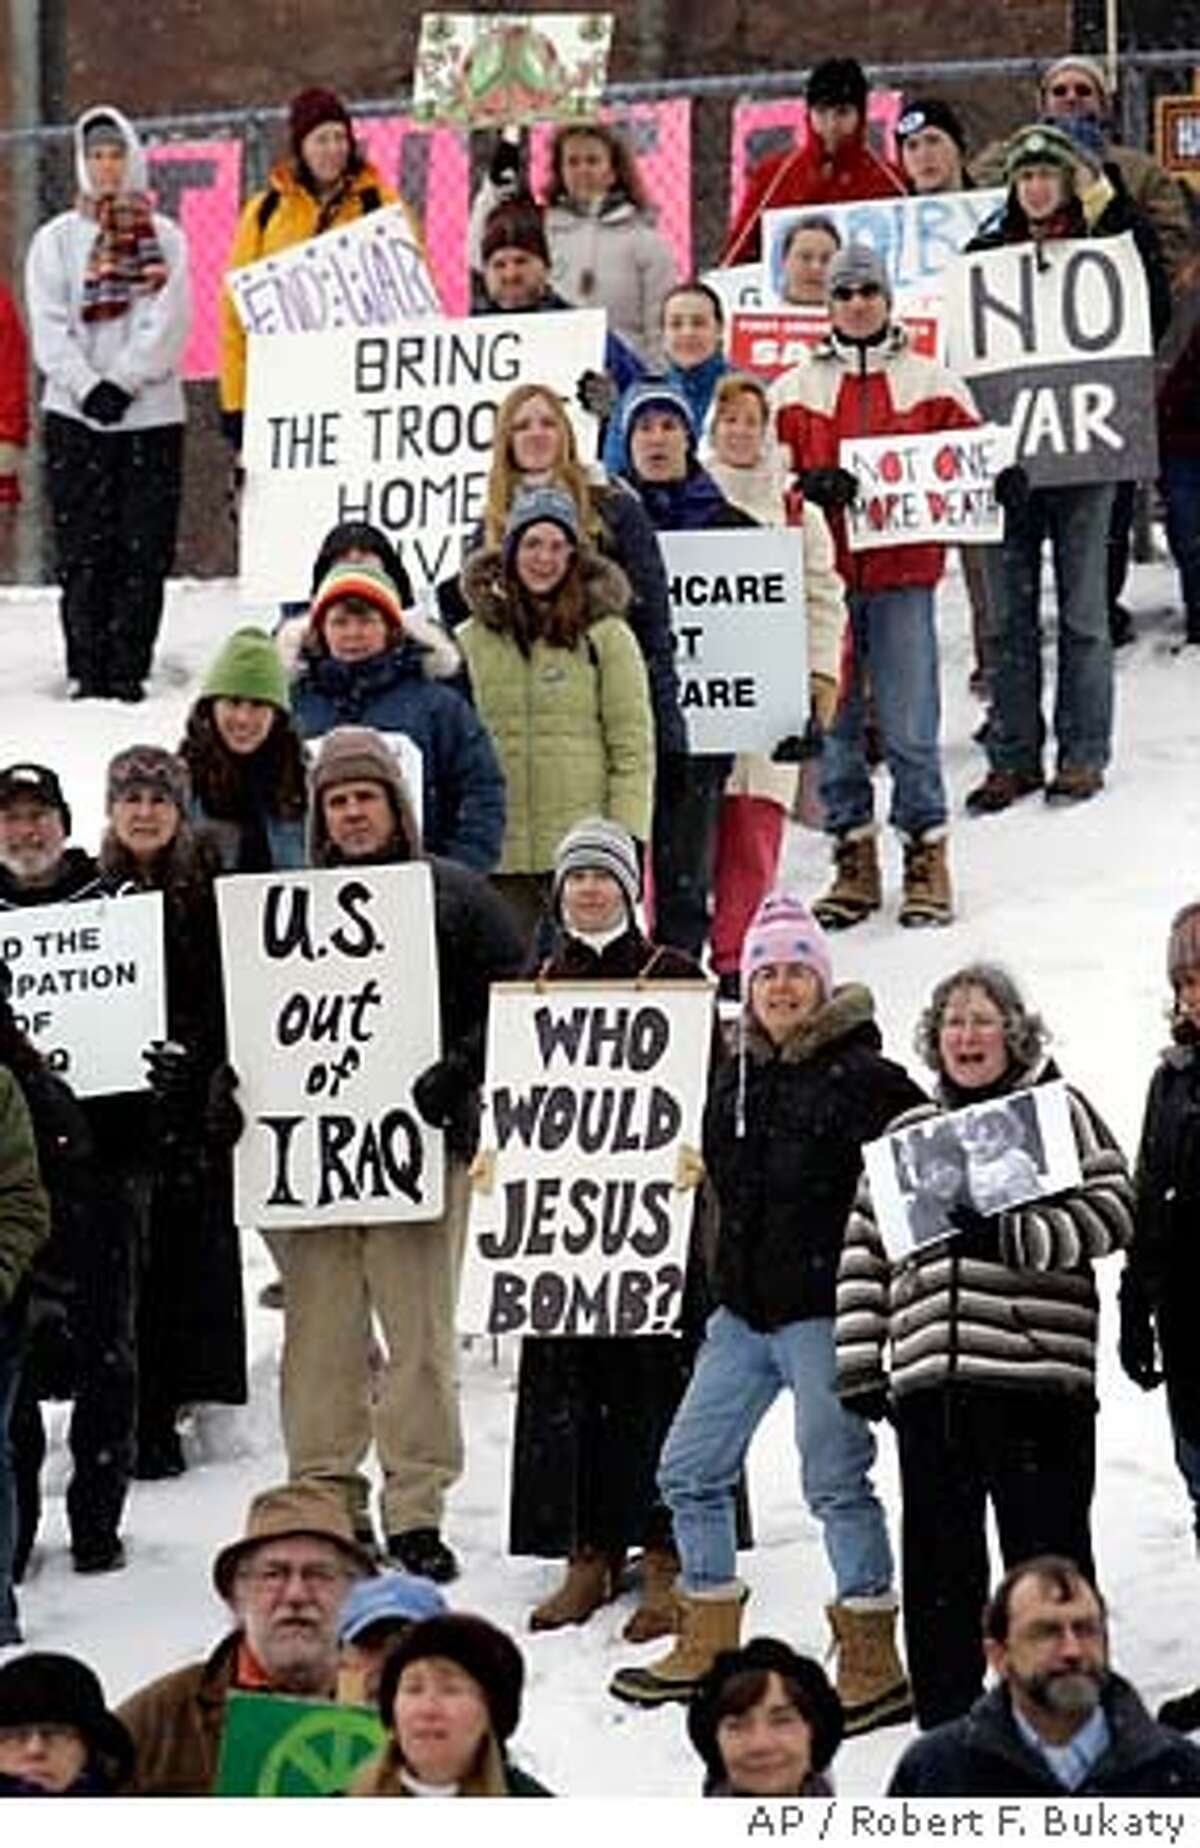 Demonstrators hold signs and sing during a protest against the Iraq war, Sunday, March 18, 2007, in Bangor, Maine. Antiwar activists gathered in dozen of towns and cities across Maine on Sunday in a storm-delayed show of opposition to the Iraq war timed to coincide with its fourth anniversary. The events came on the heels of Saturday's march on the Pentagon that drew thousands of demonstrators, including about 120 from Maine. (AP Photo/Robert F. Bukaty)